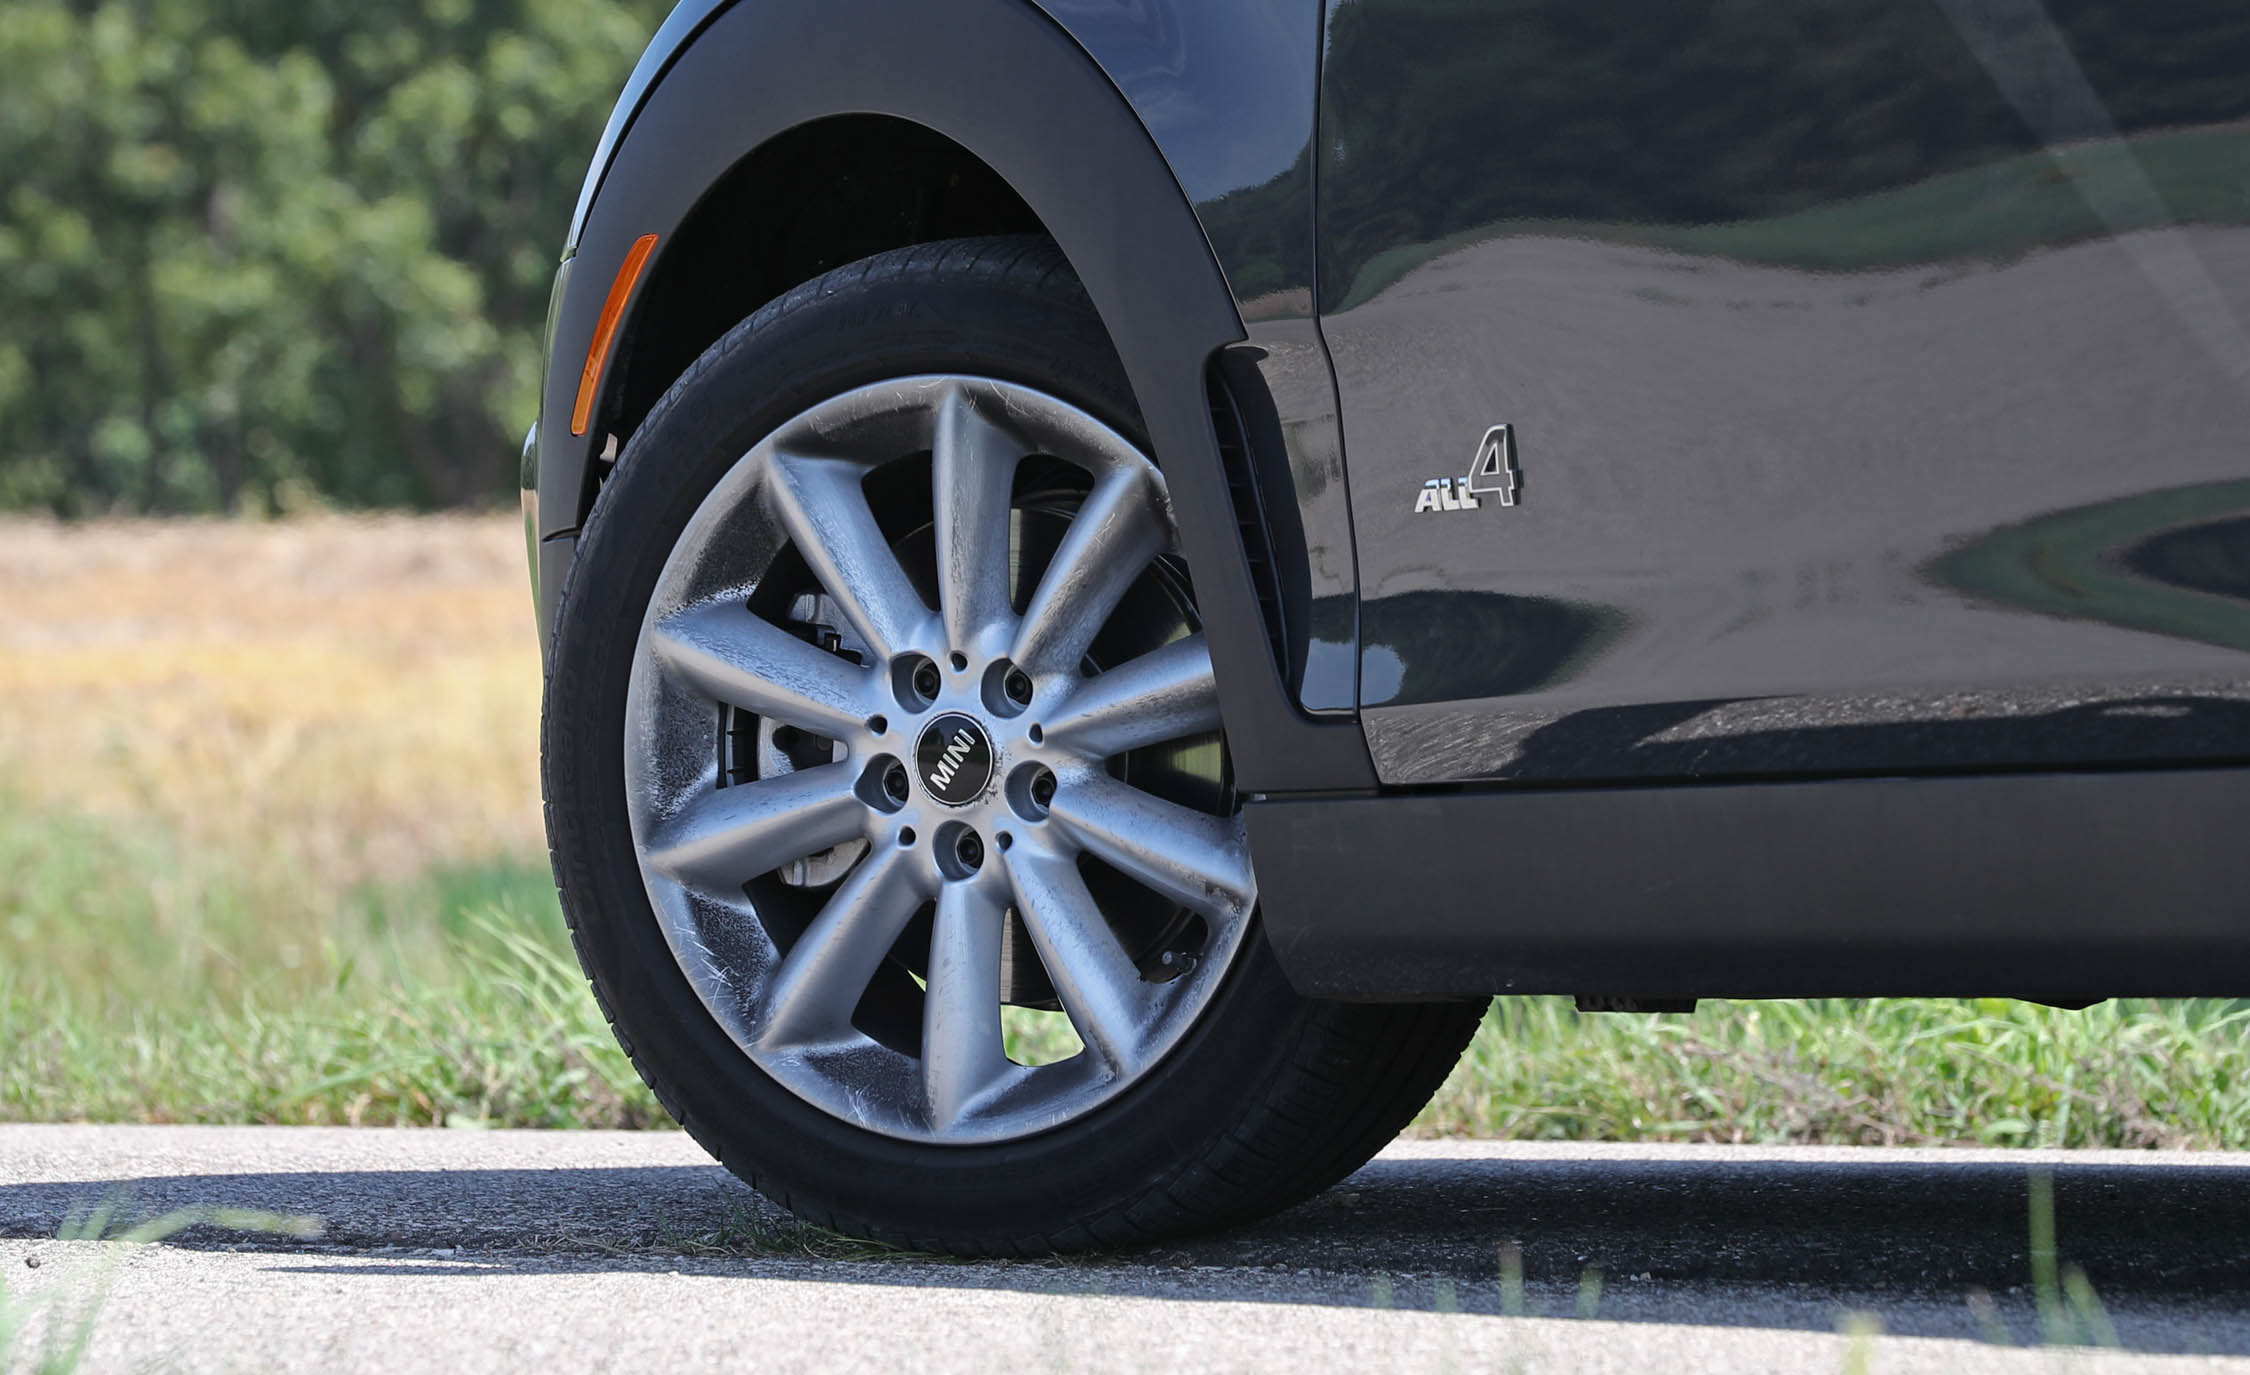 2017 Mini Cooper S ALL4 Clubman Exterior View Wheel Trim (Photo 16 of 29)